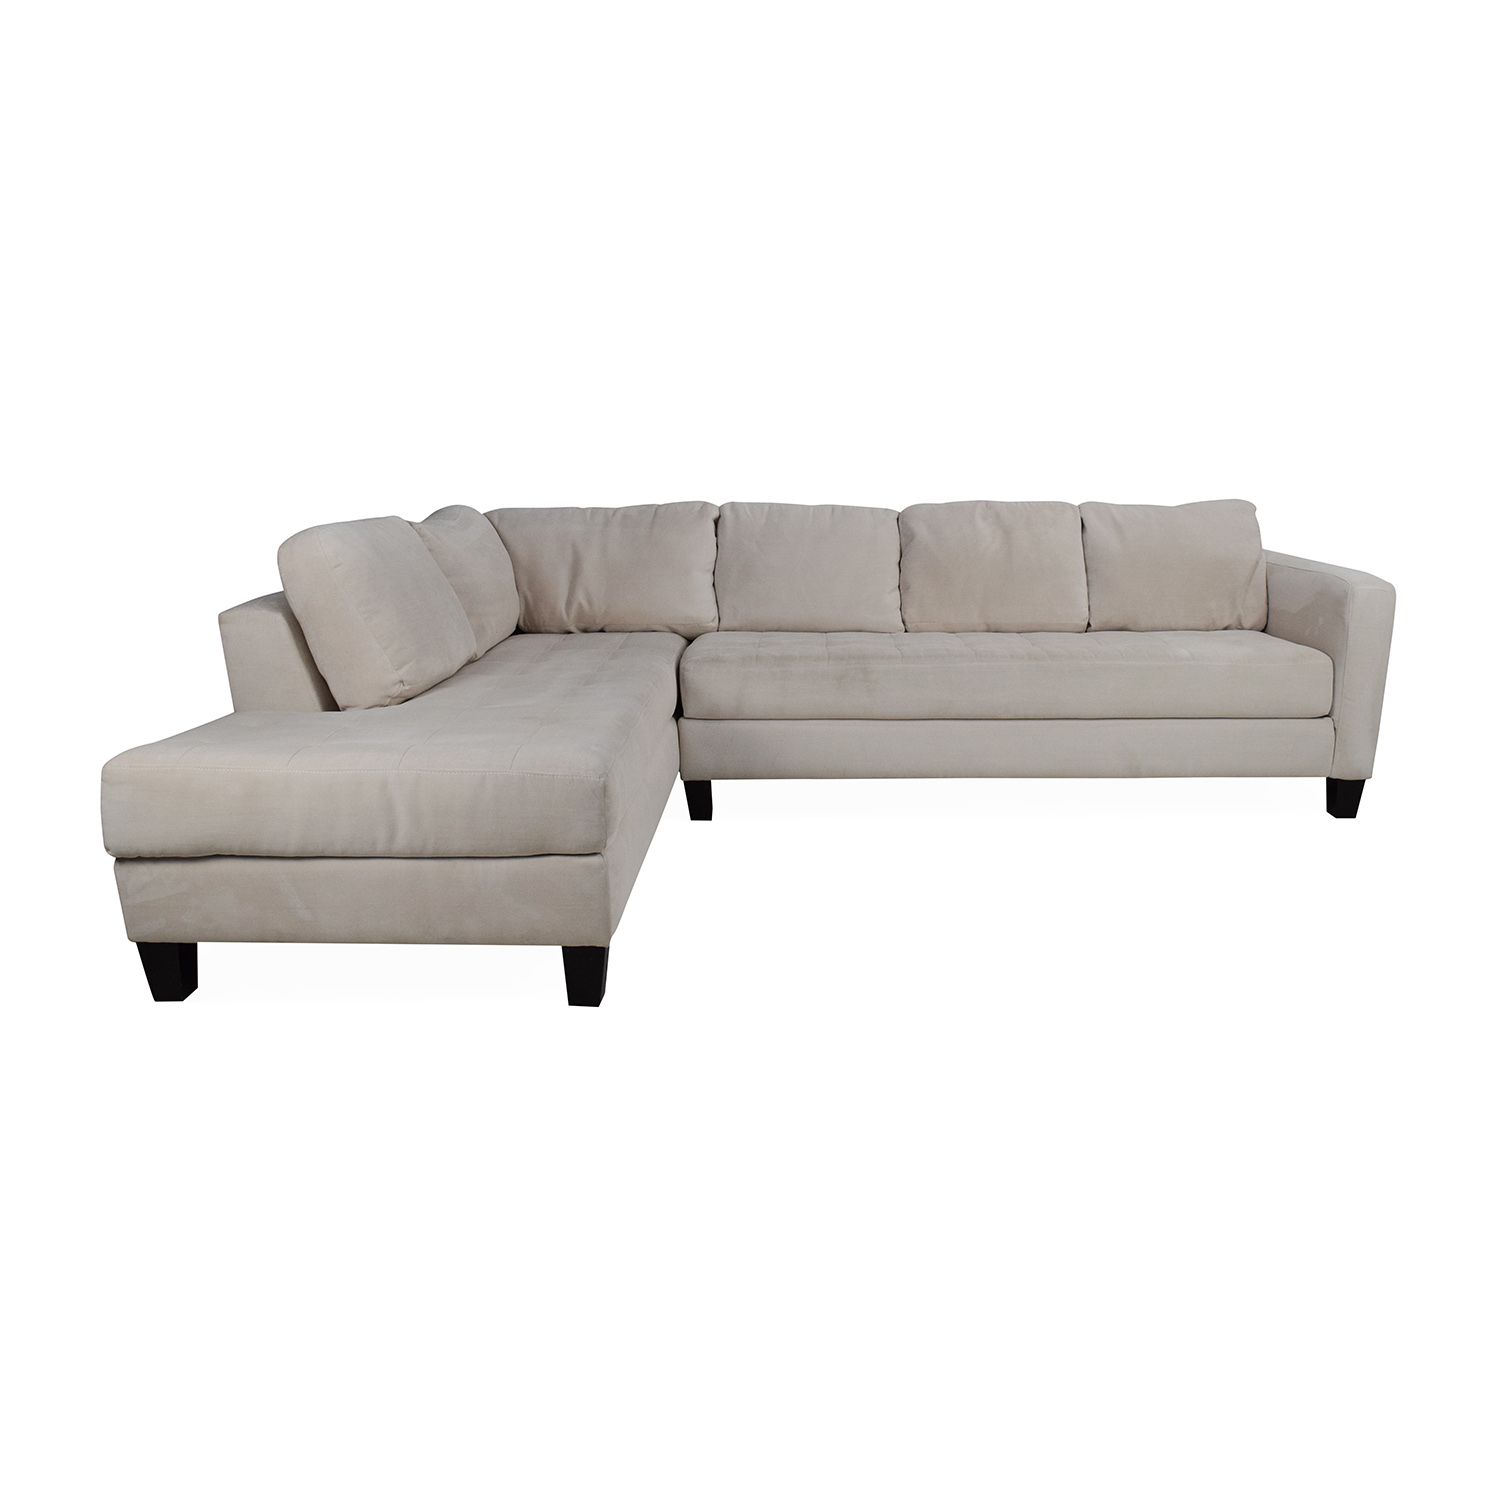 Microfiber Sectional Sofa 65 Off Macy S Macy S Milo Fabric Microfiber Sectional Sofas